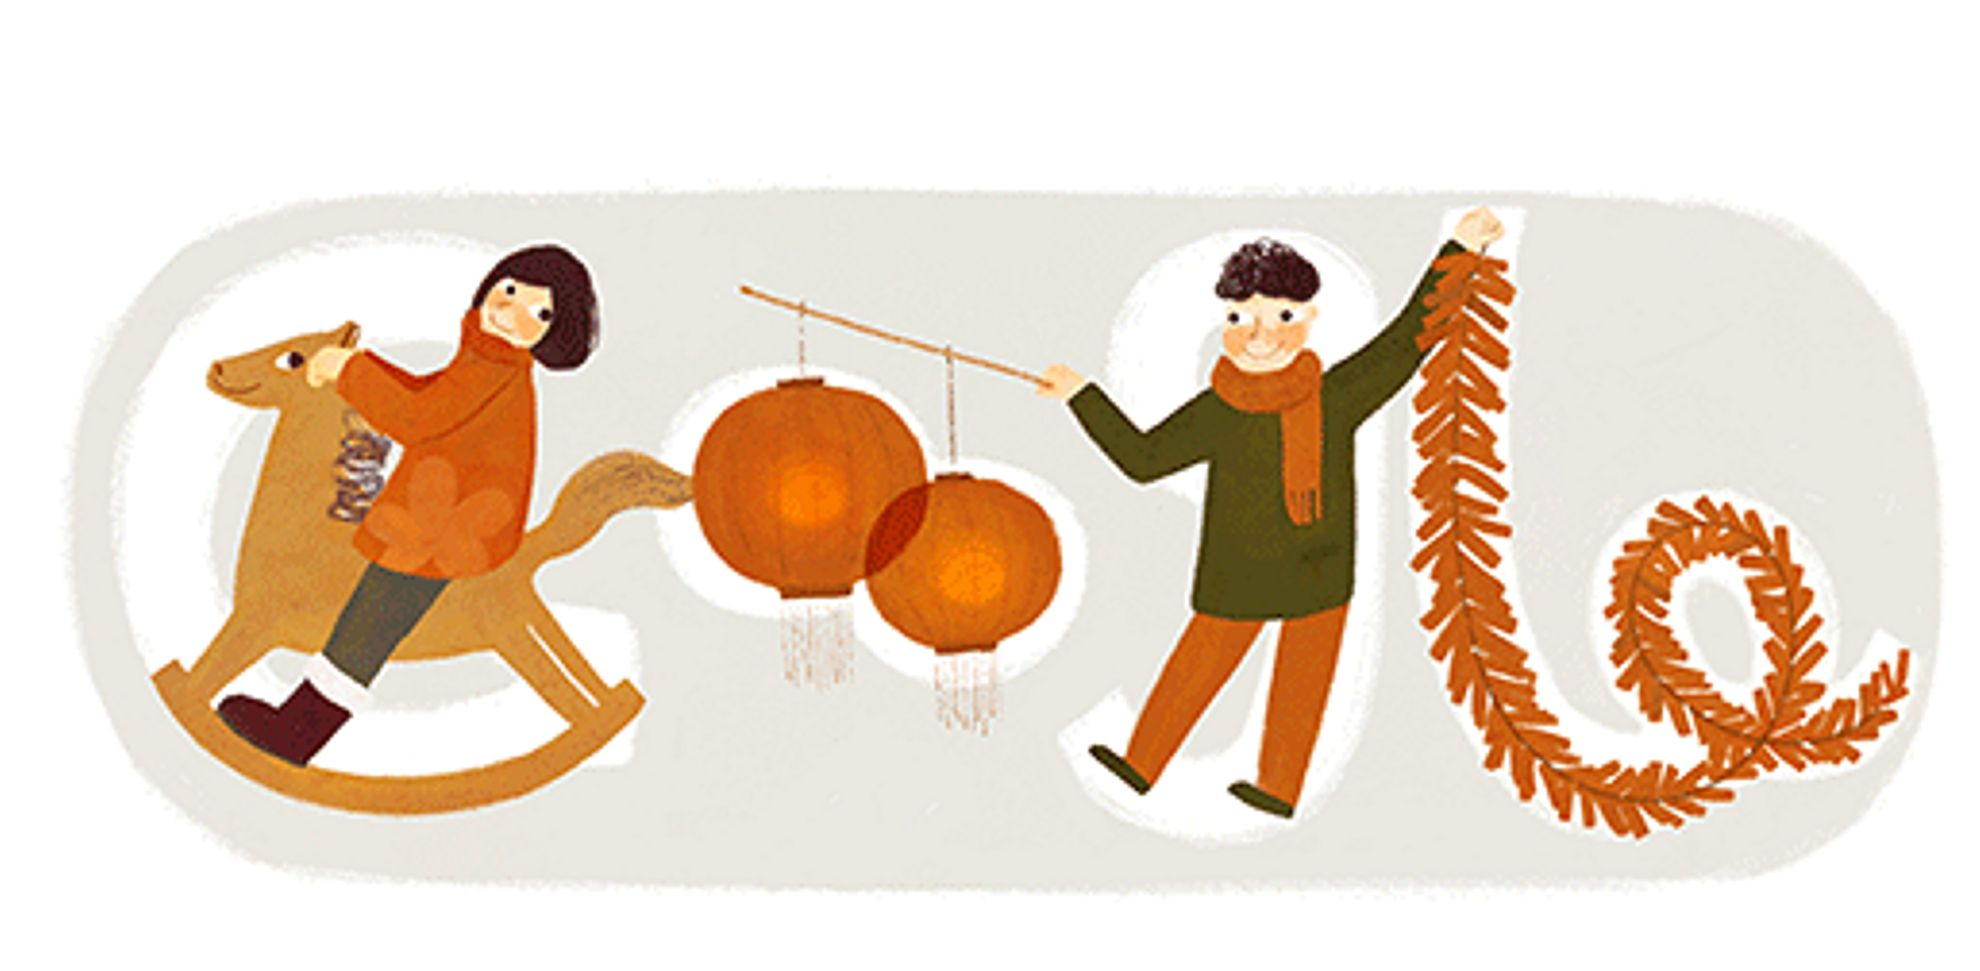 today 30 january 2014 google started the chinese new year 2014 early